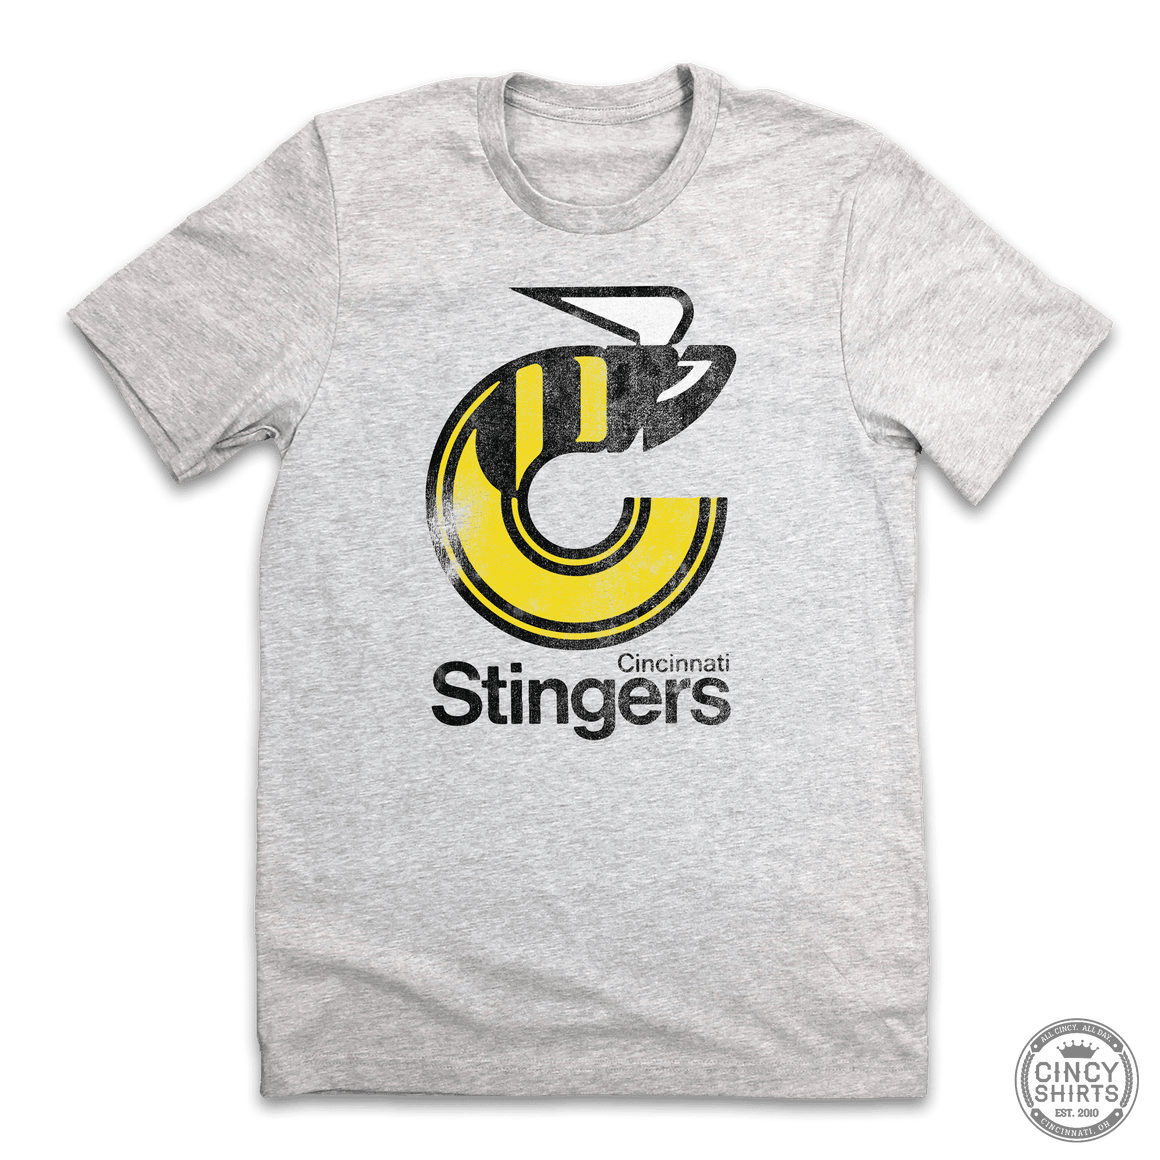 Cincinnati Stingers Tee - Cincy Shirts